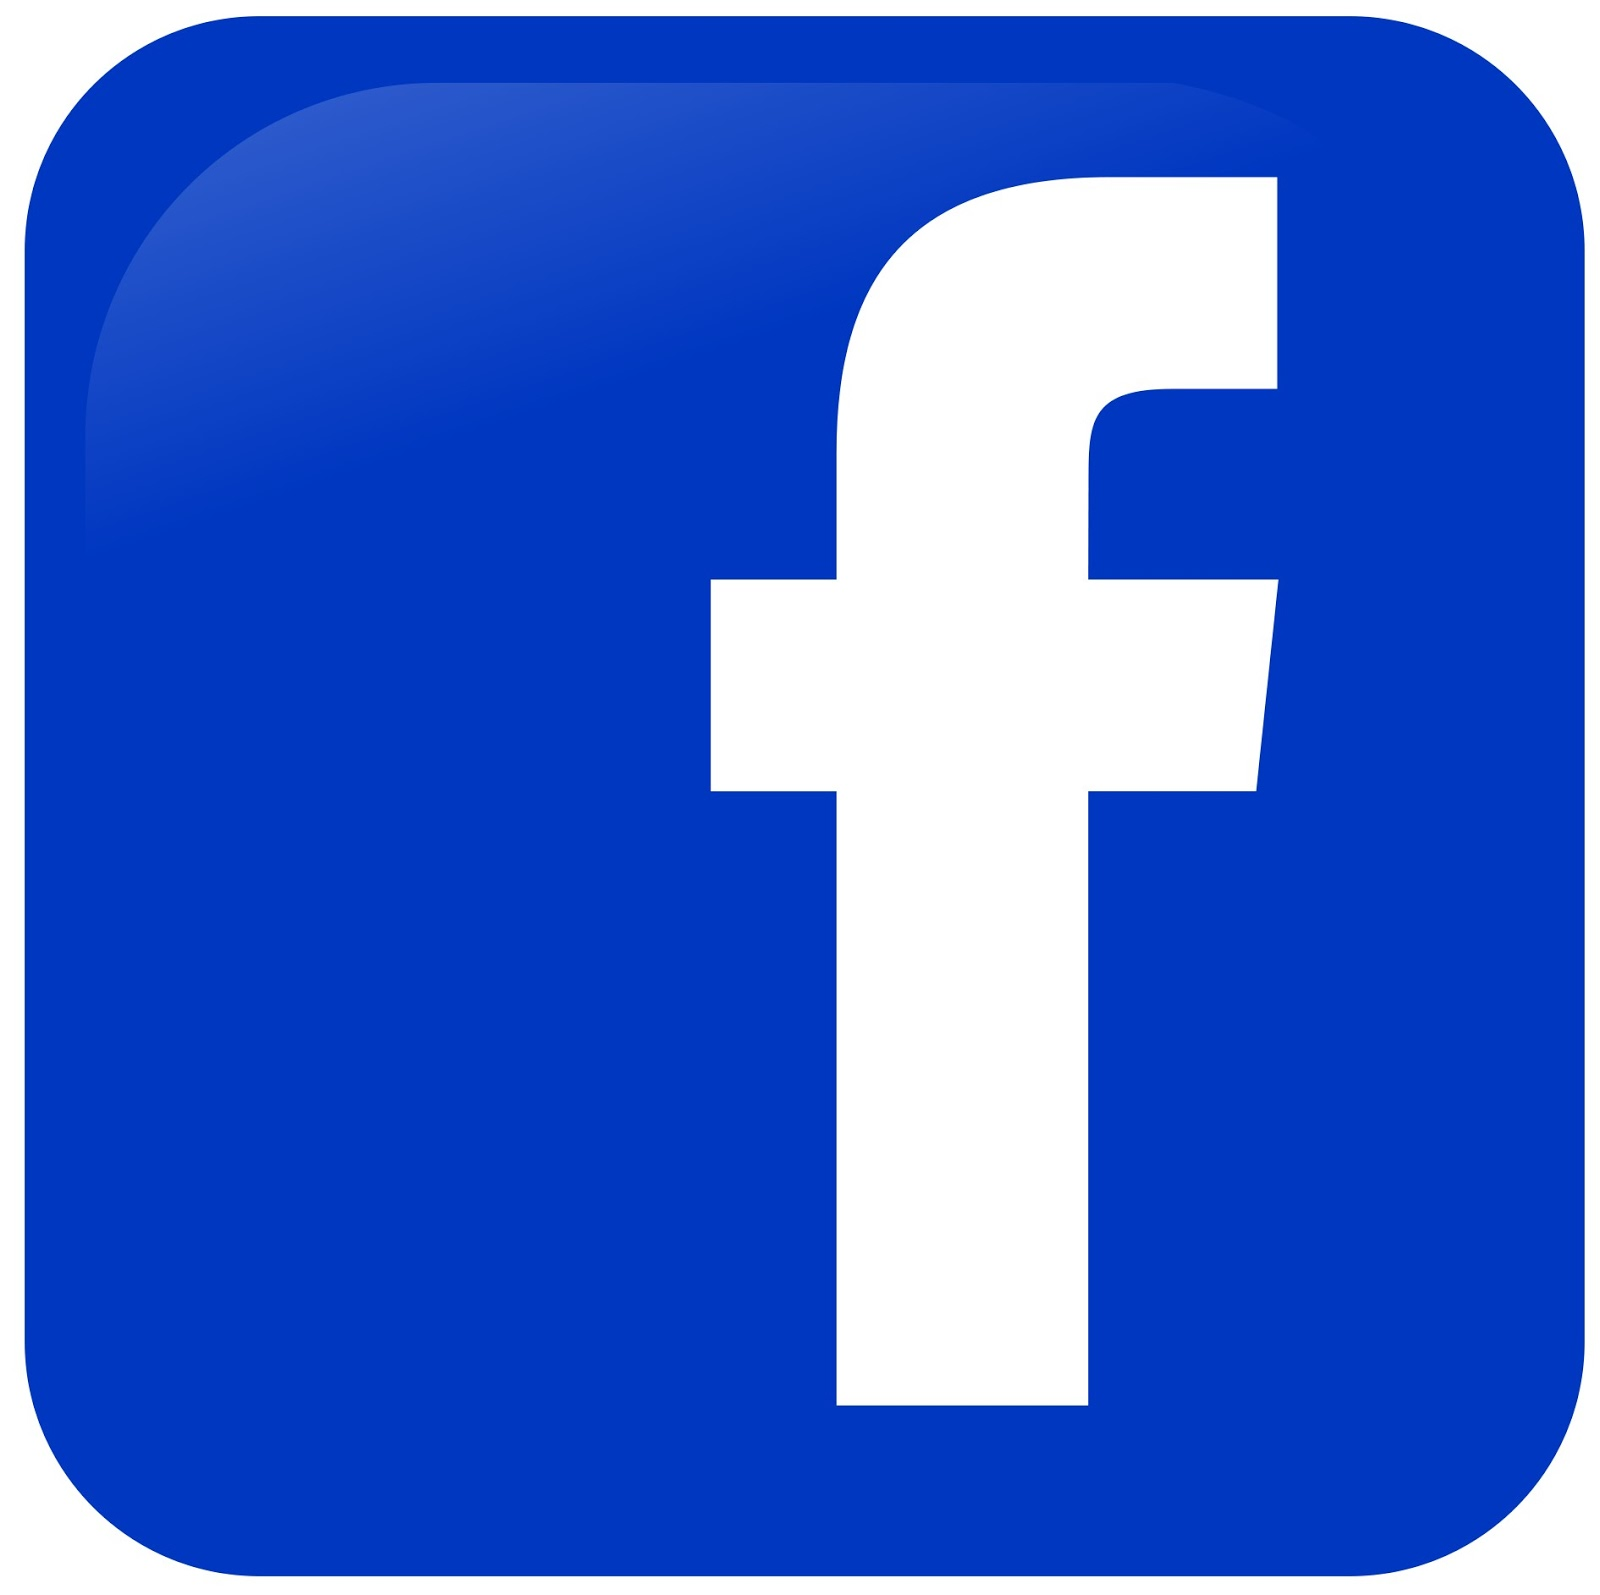 Free facebook icon clipart image free download Free Facebook Cliparts, Download Free Clip Art, Free Clip Art on ... image free download